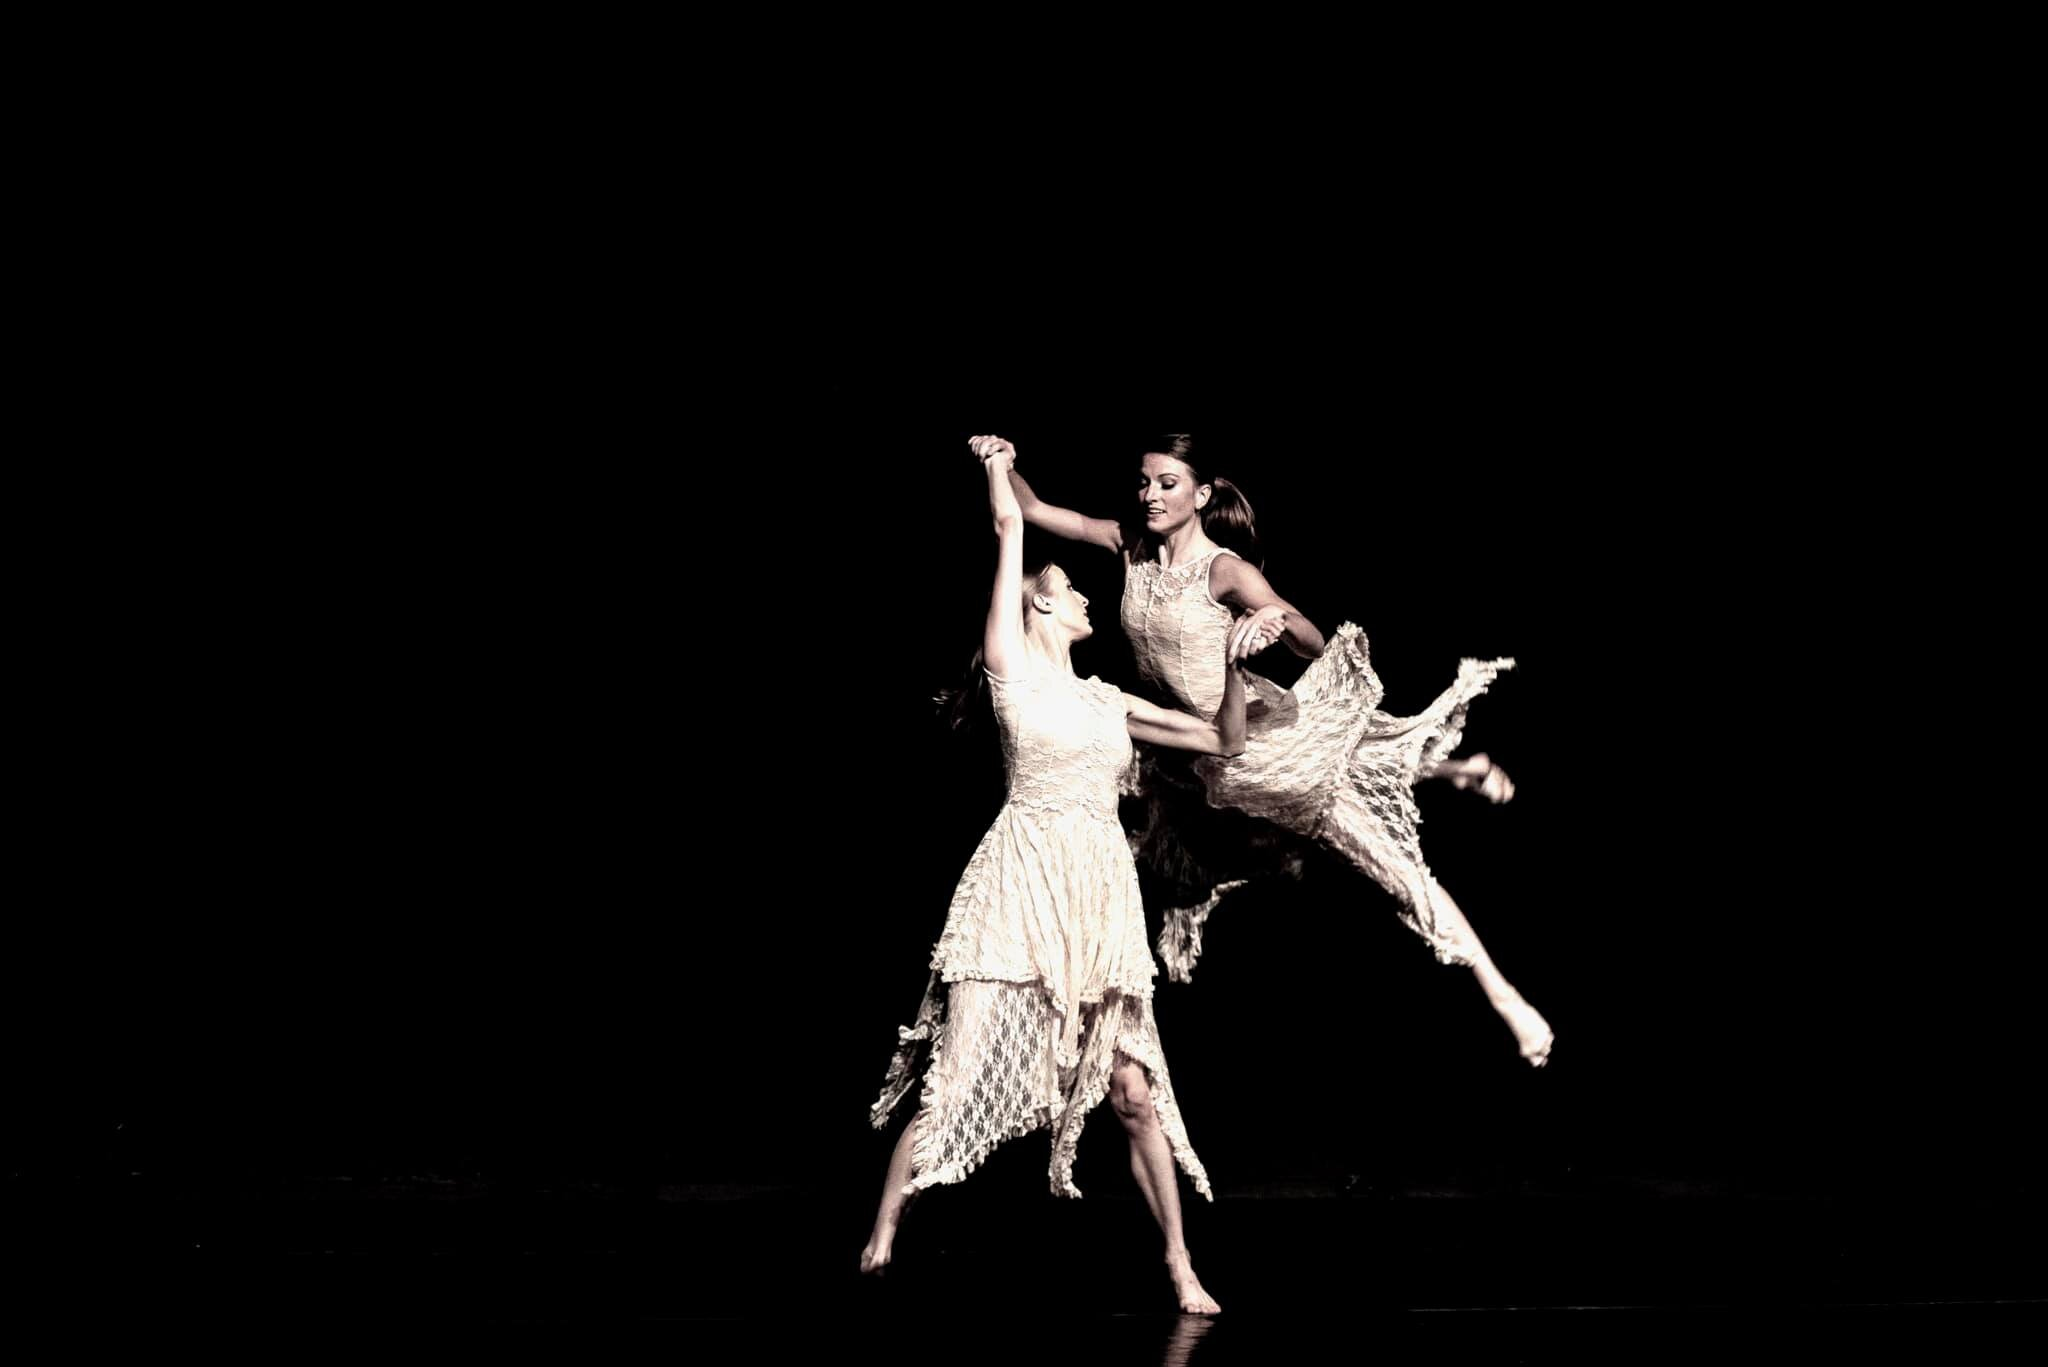 Artist Kevin Kyzer's photo of dancers Claire Richards Rapp and Bonnie Boiter-Jolley